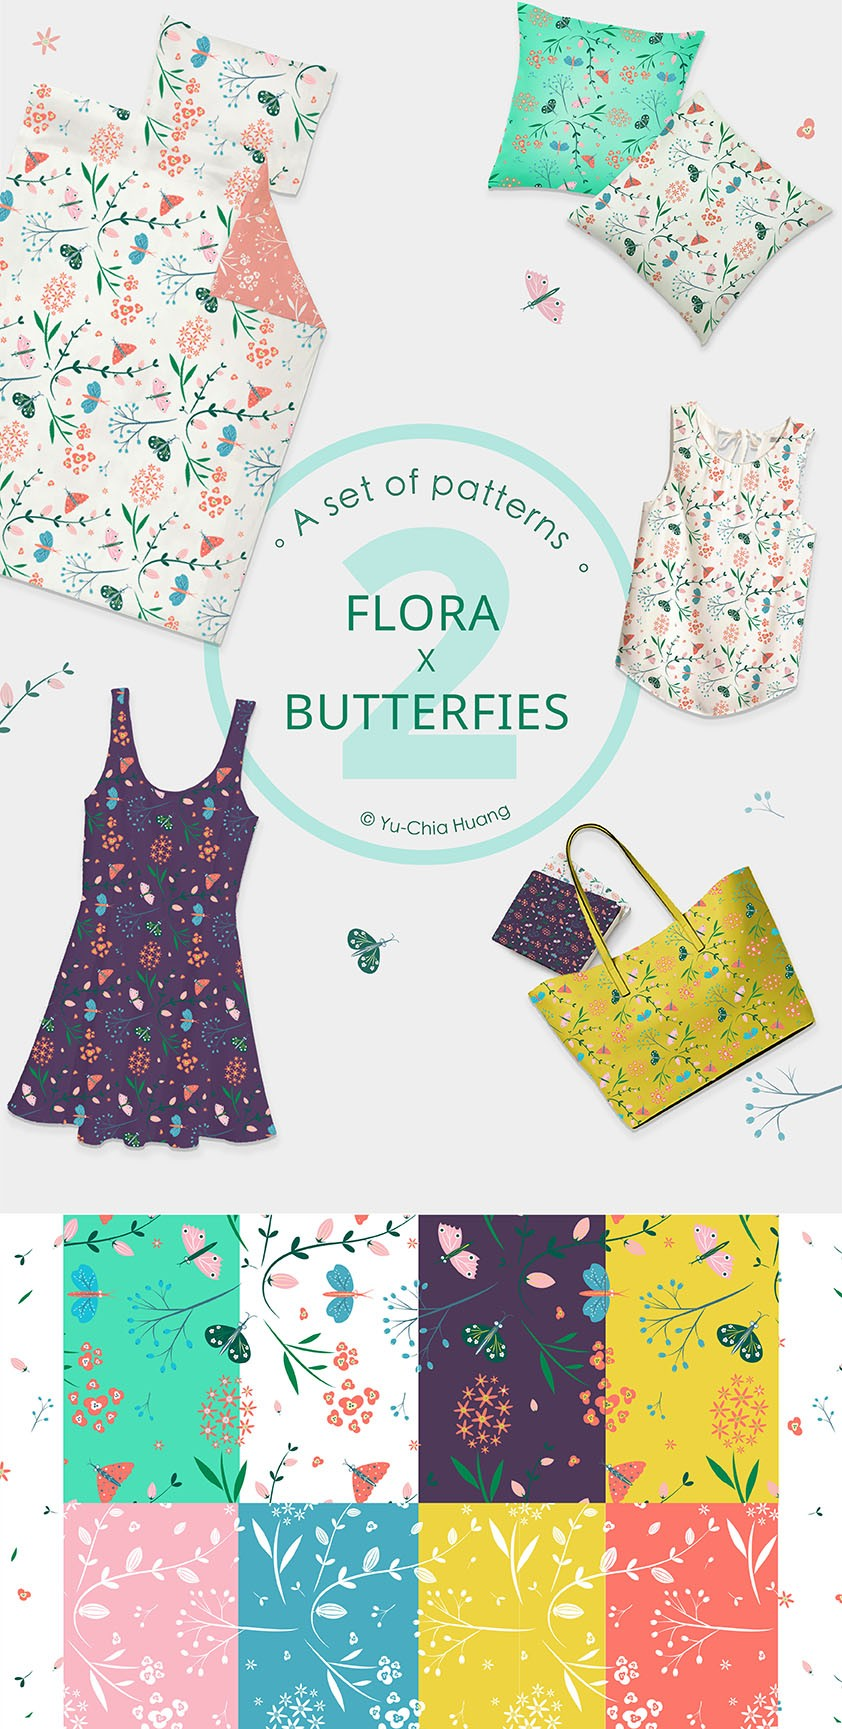 layout_floraxbutterflies_small